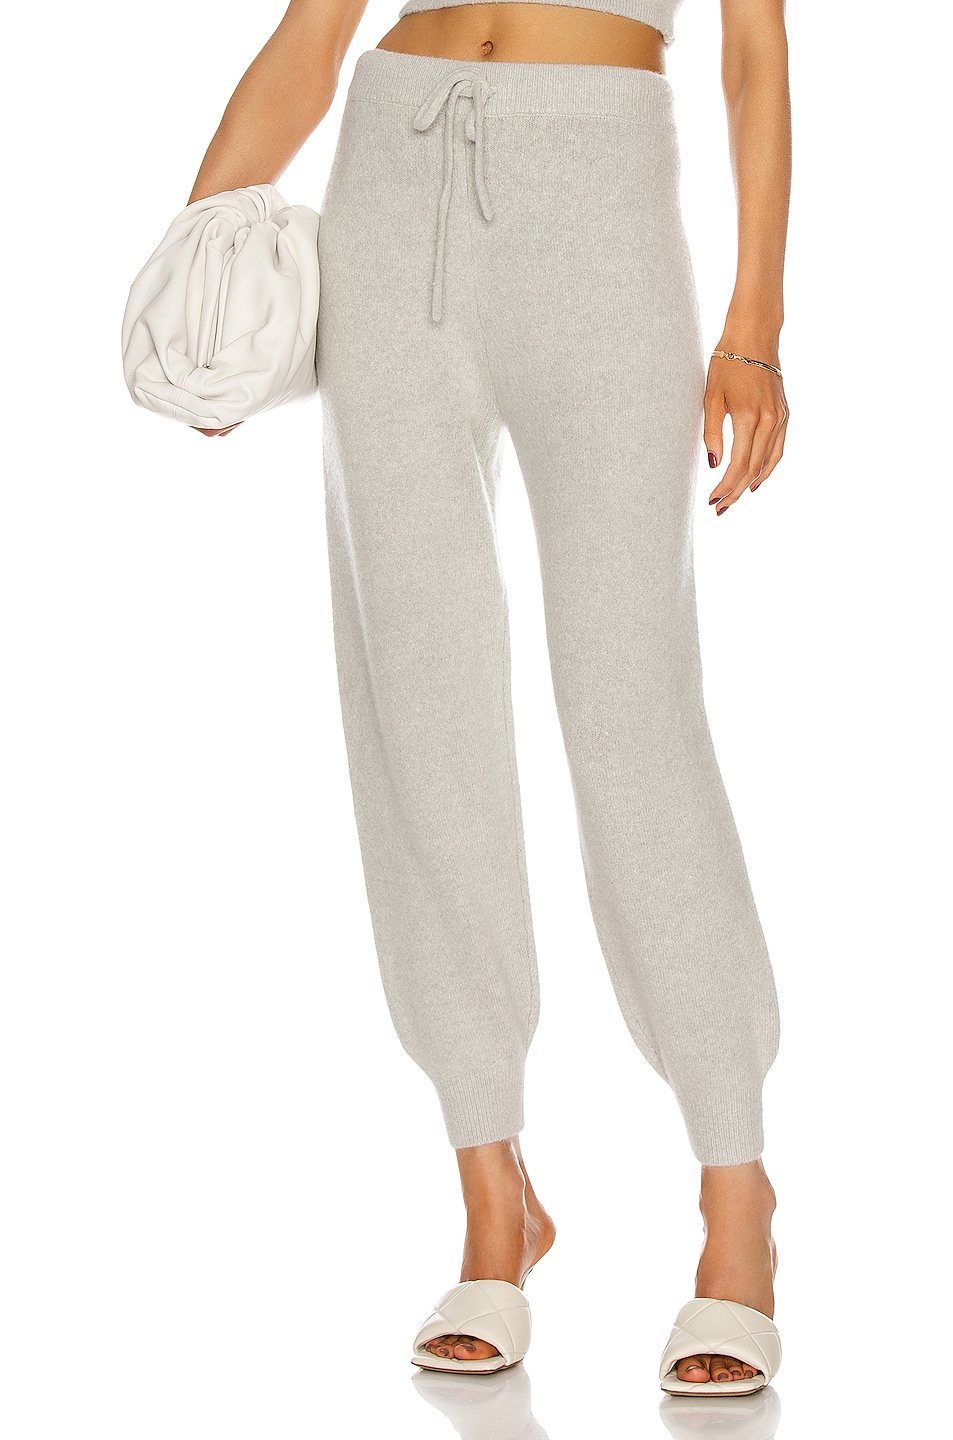 Image 1 of JoosTricot Knit Joggers in Mist